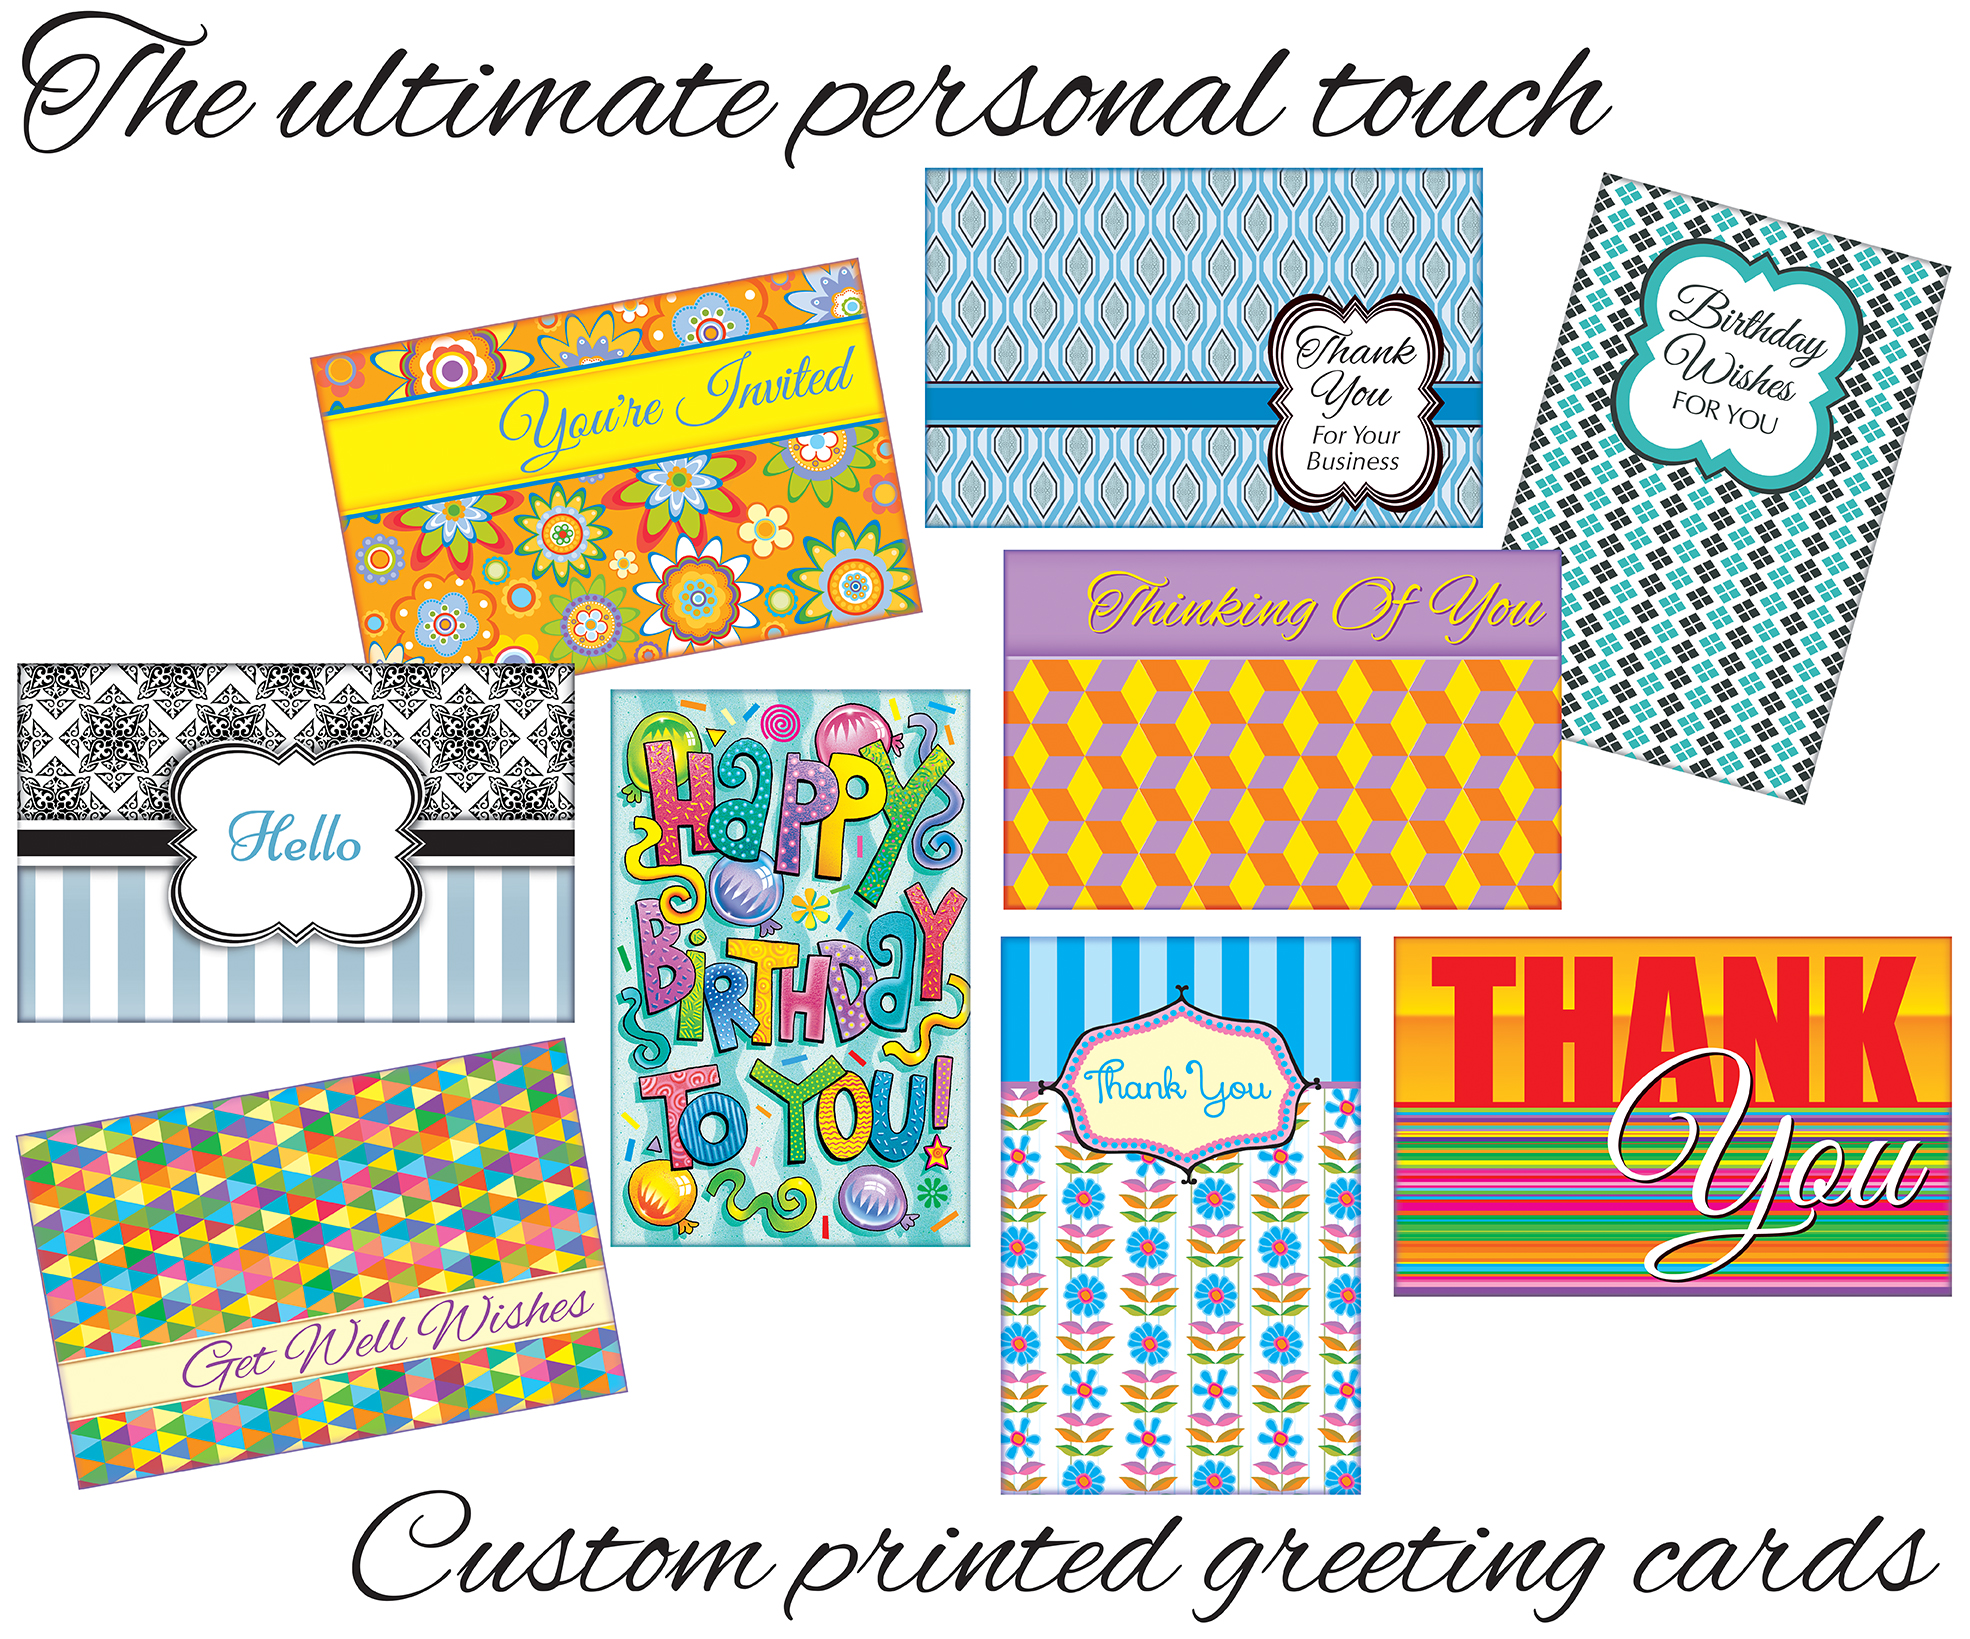 Stockwell Greetings Wholesale Greeting Cards Custom